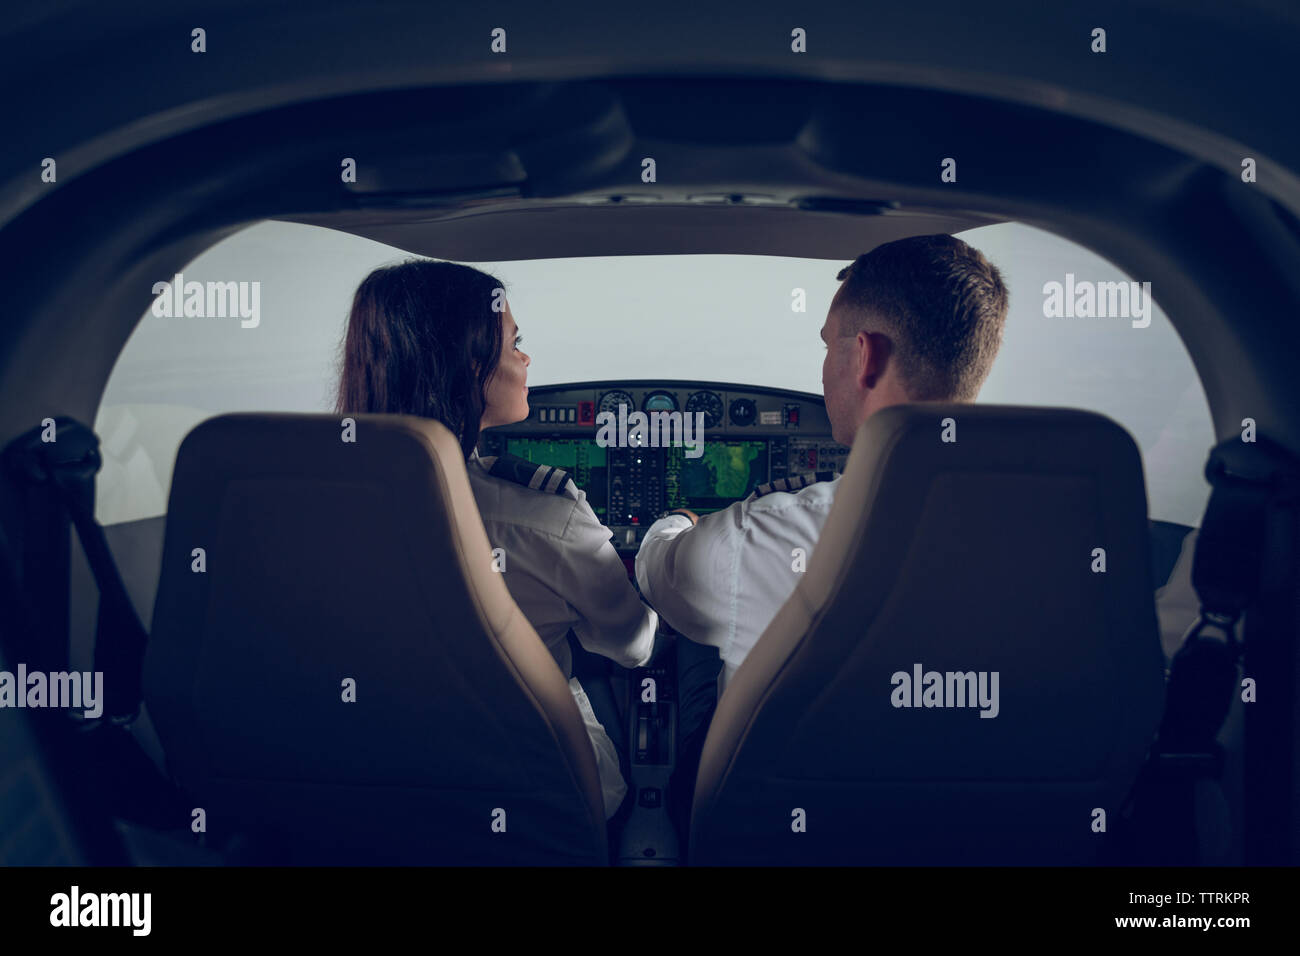 Rear view of male pilot guiding female trainee in flight simulator - Stock Image